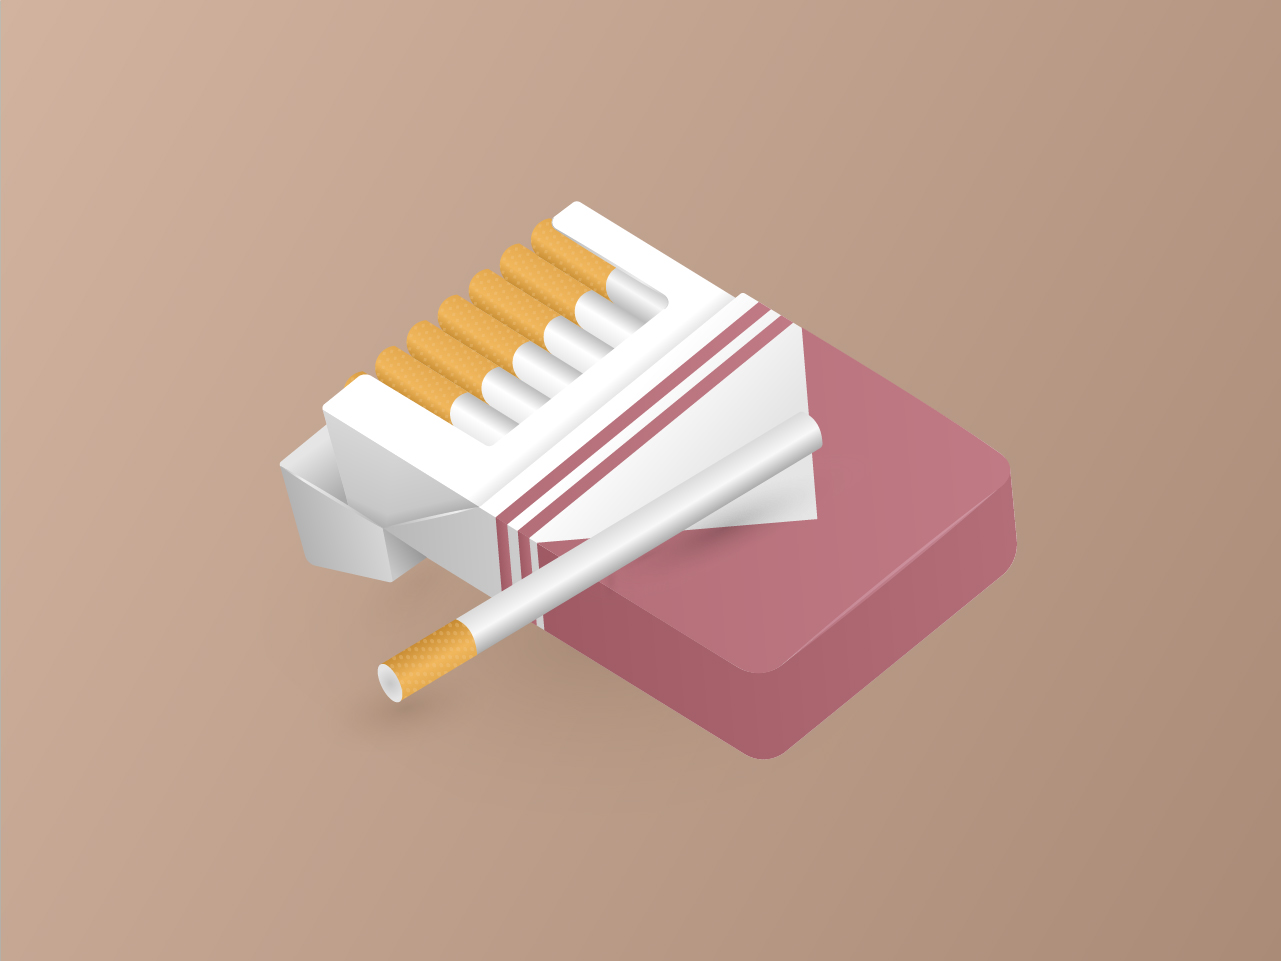 Illustration of a cigarette packet